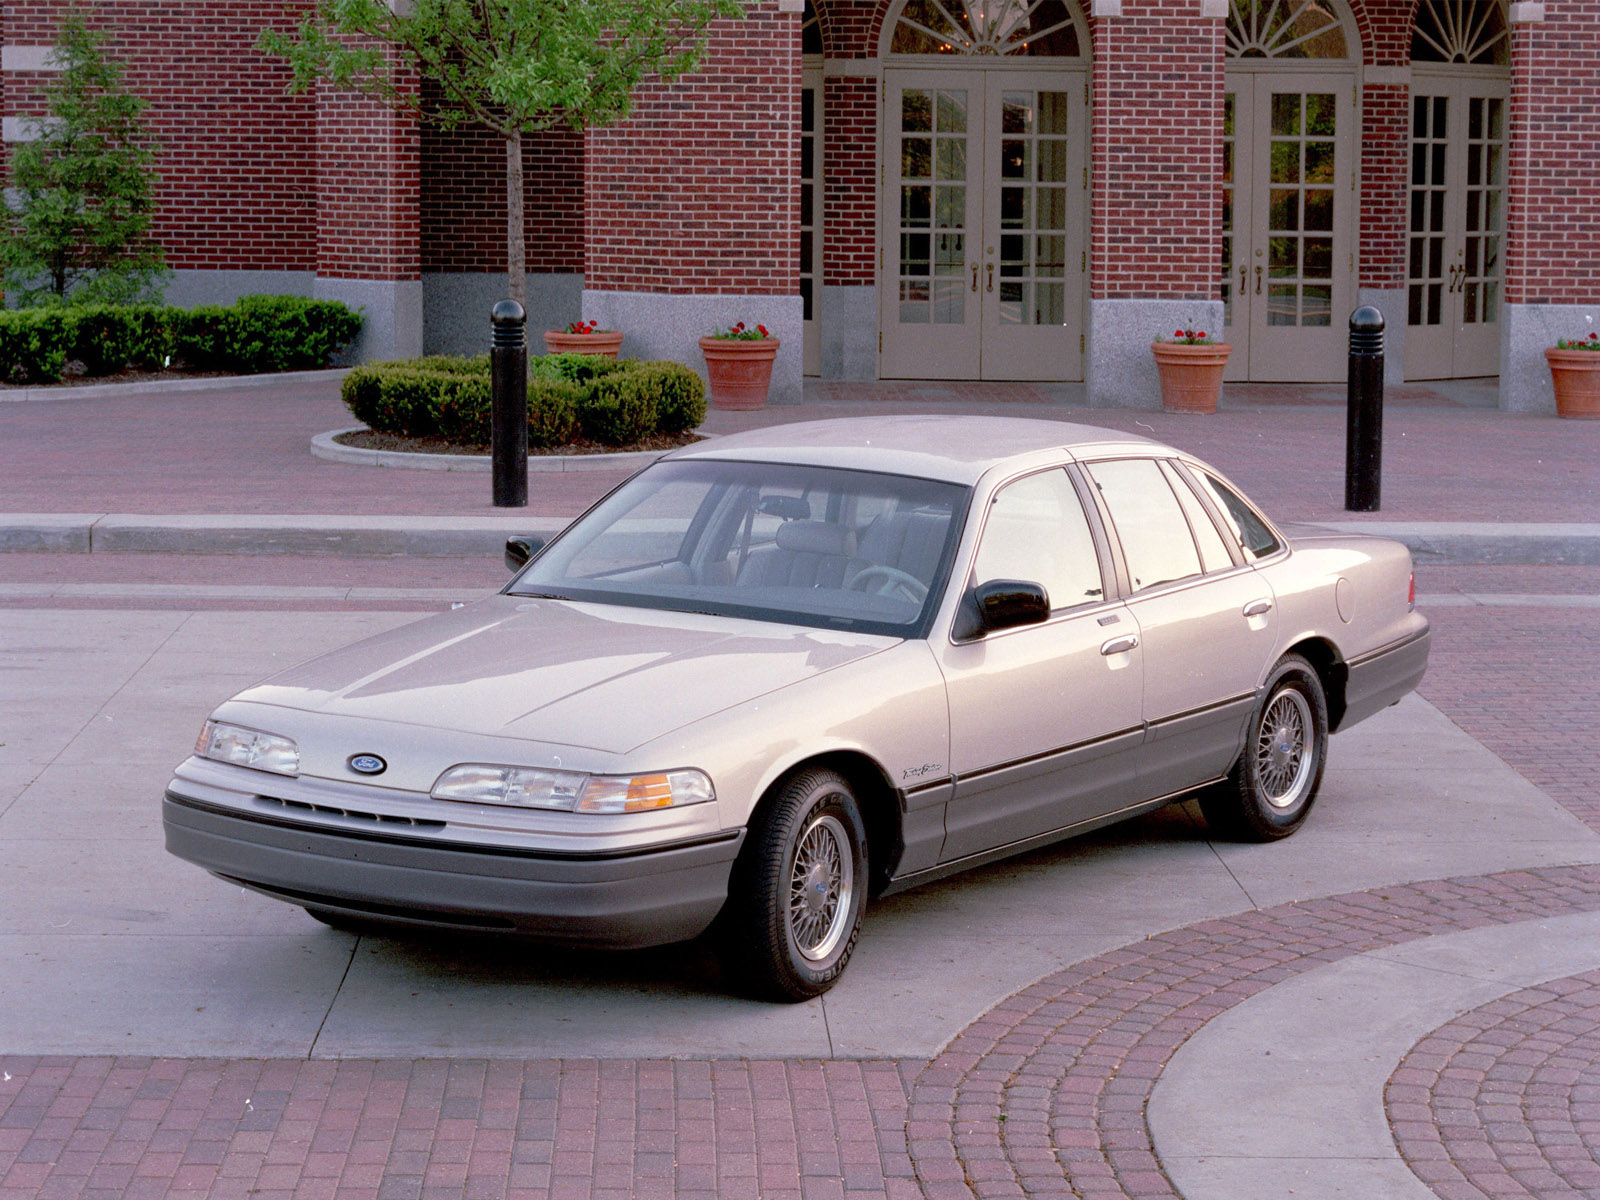 1992 ford crown victoria size 478 kb resolution 1600x1200 type link file src download photo